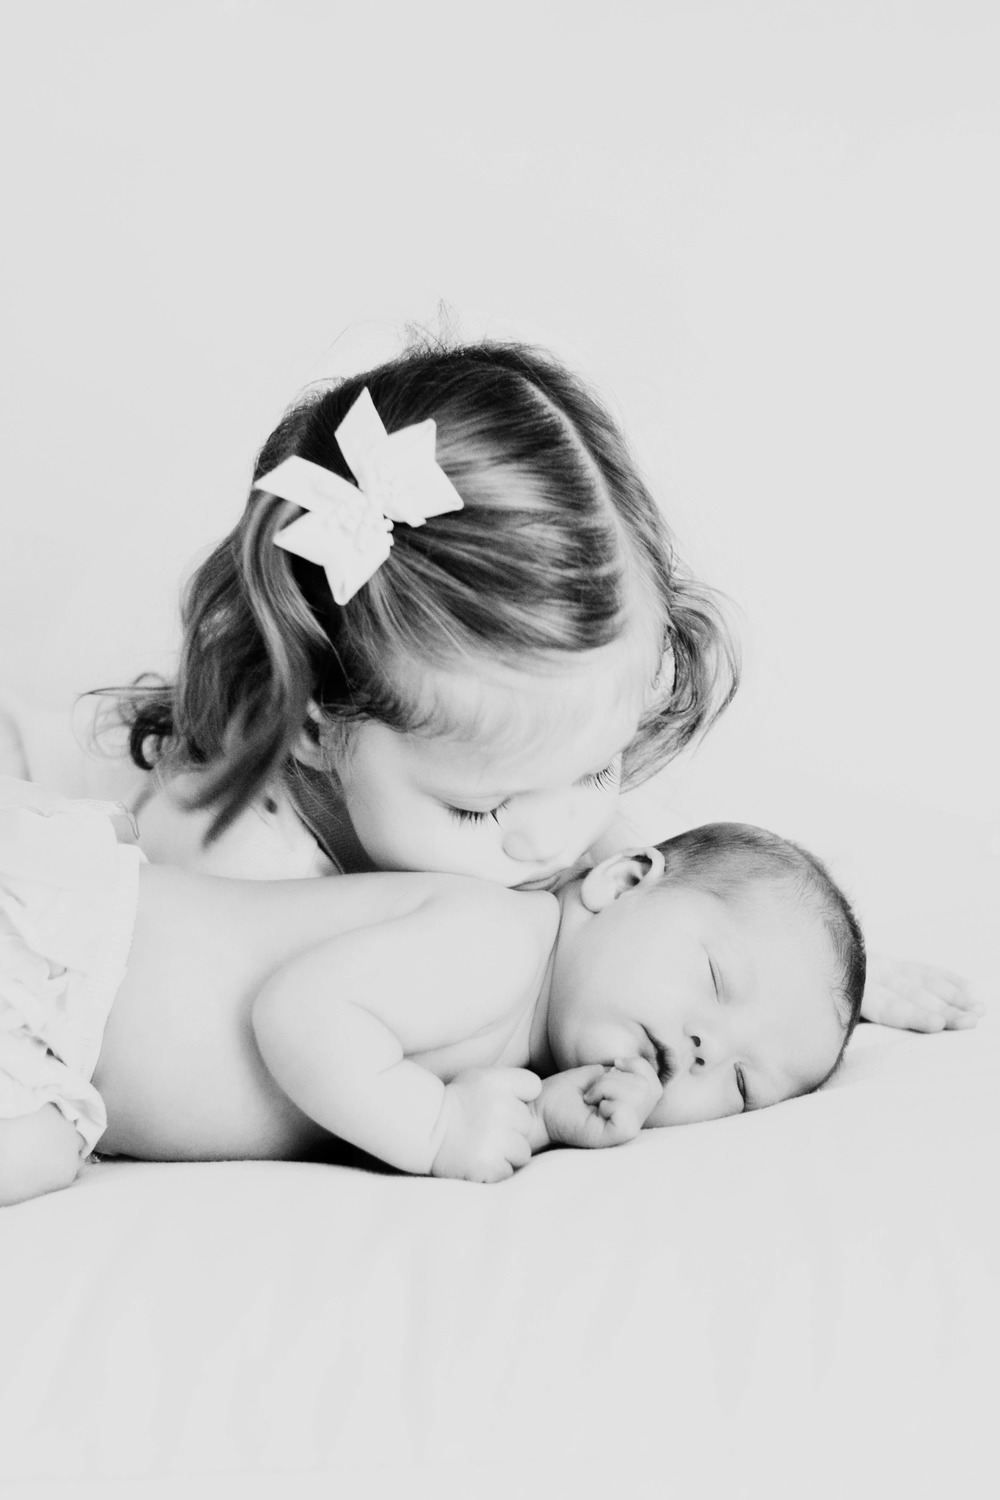 017_Newborn Session_BWs.jpg